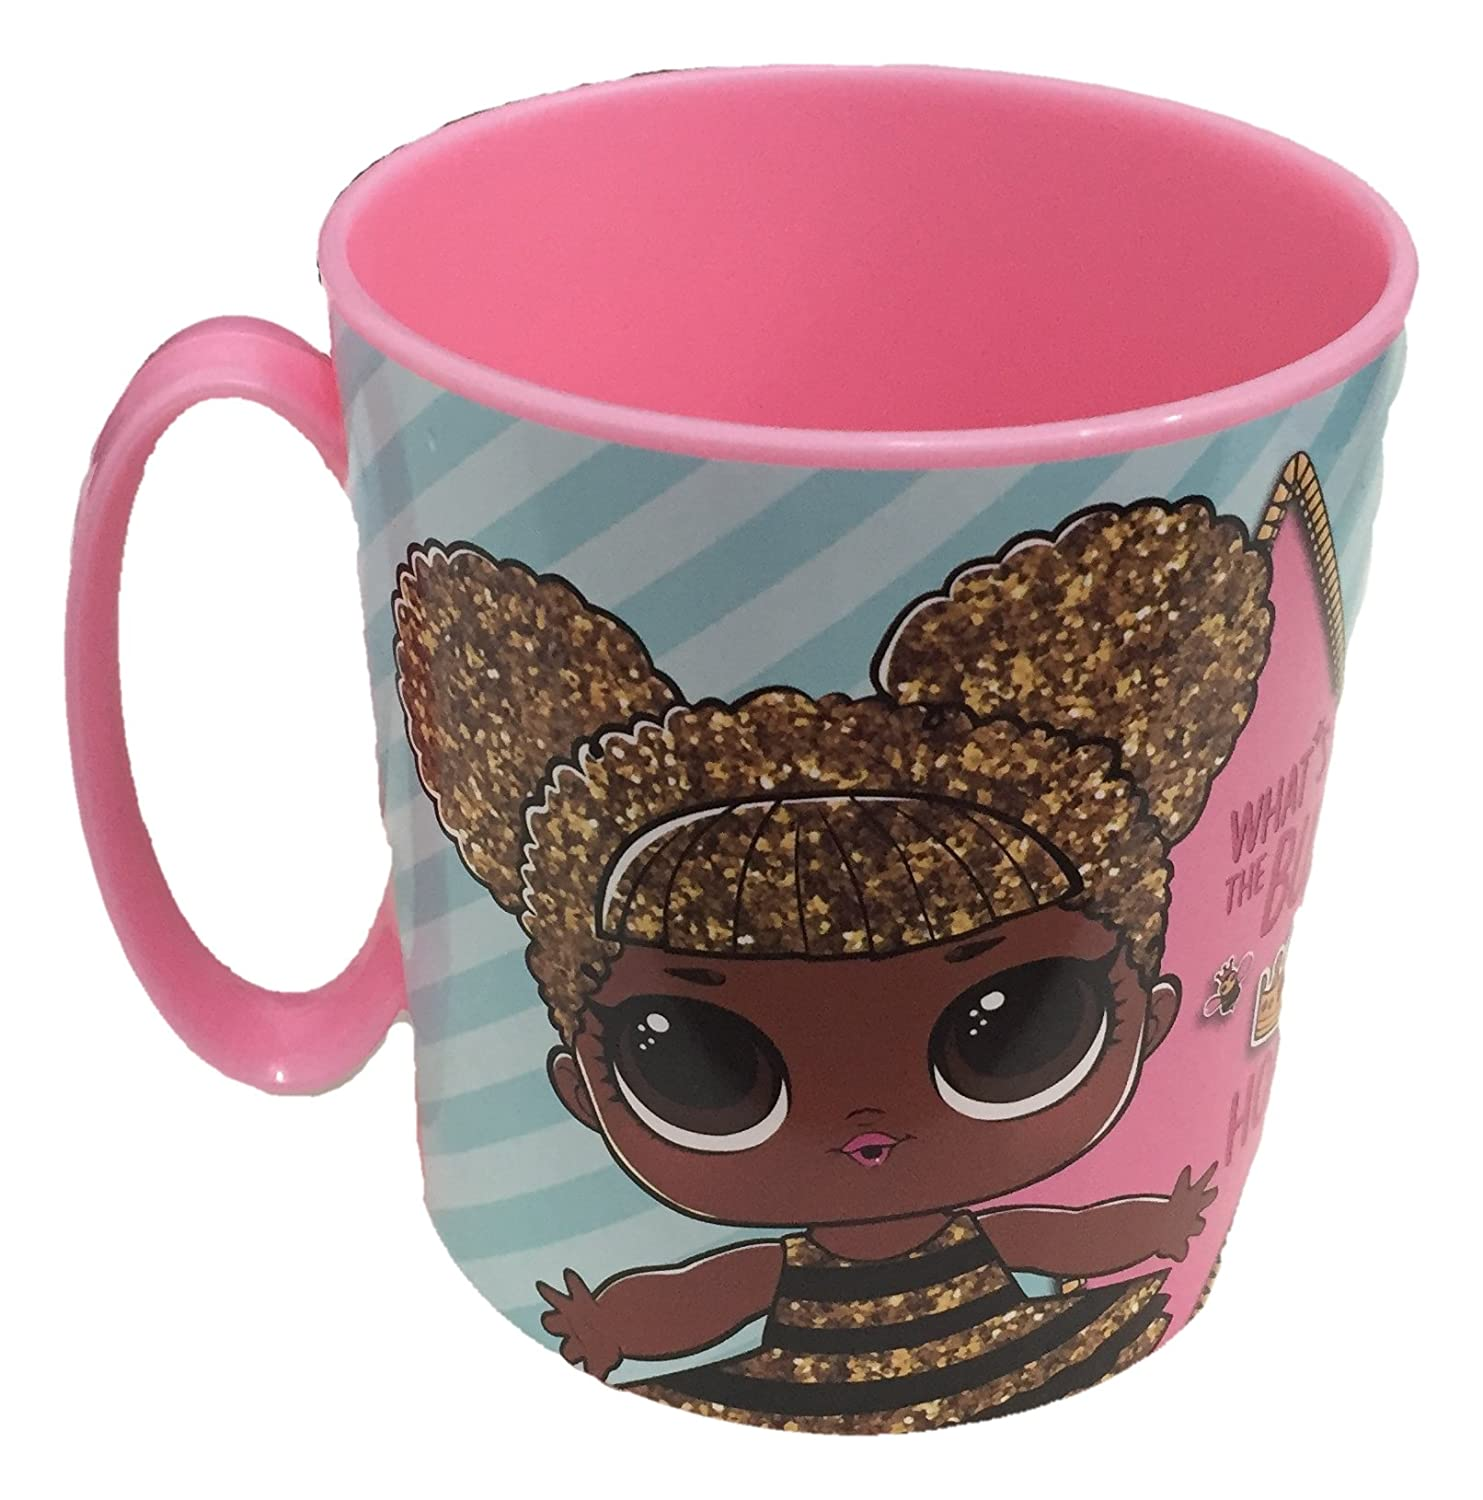 LOL Surprise 44304. Taza para microondas 350ml. SELECCION DRIM